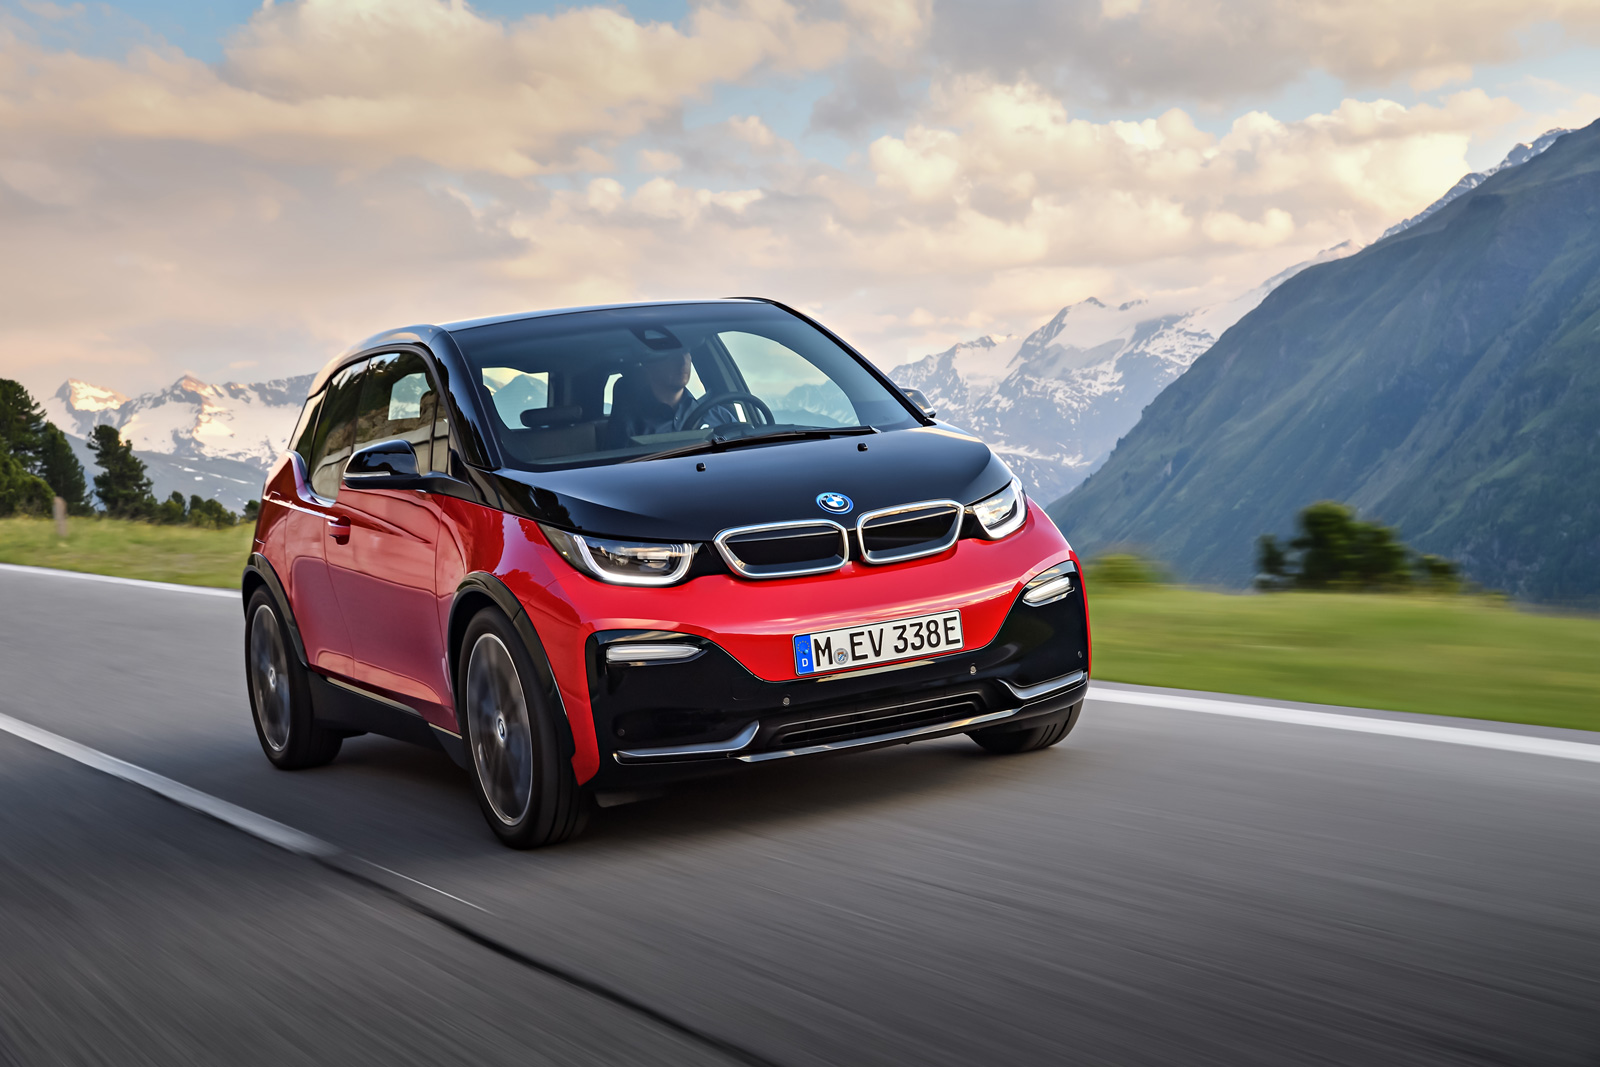 bmw forum bmw adds sportier i3s model to refreshed lineup. Black Bedroom Furniture Sets. Home Design Ideas